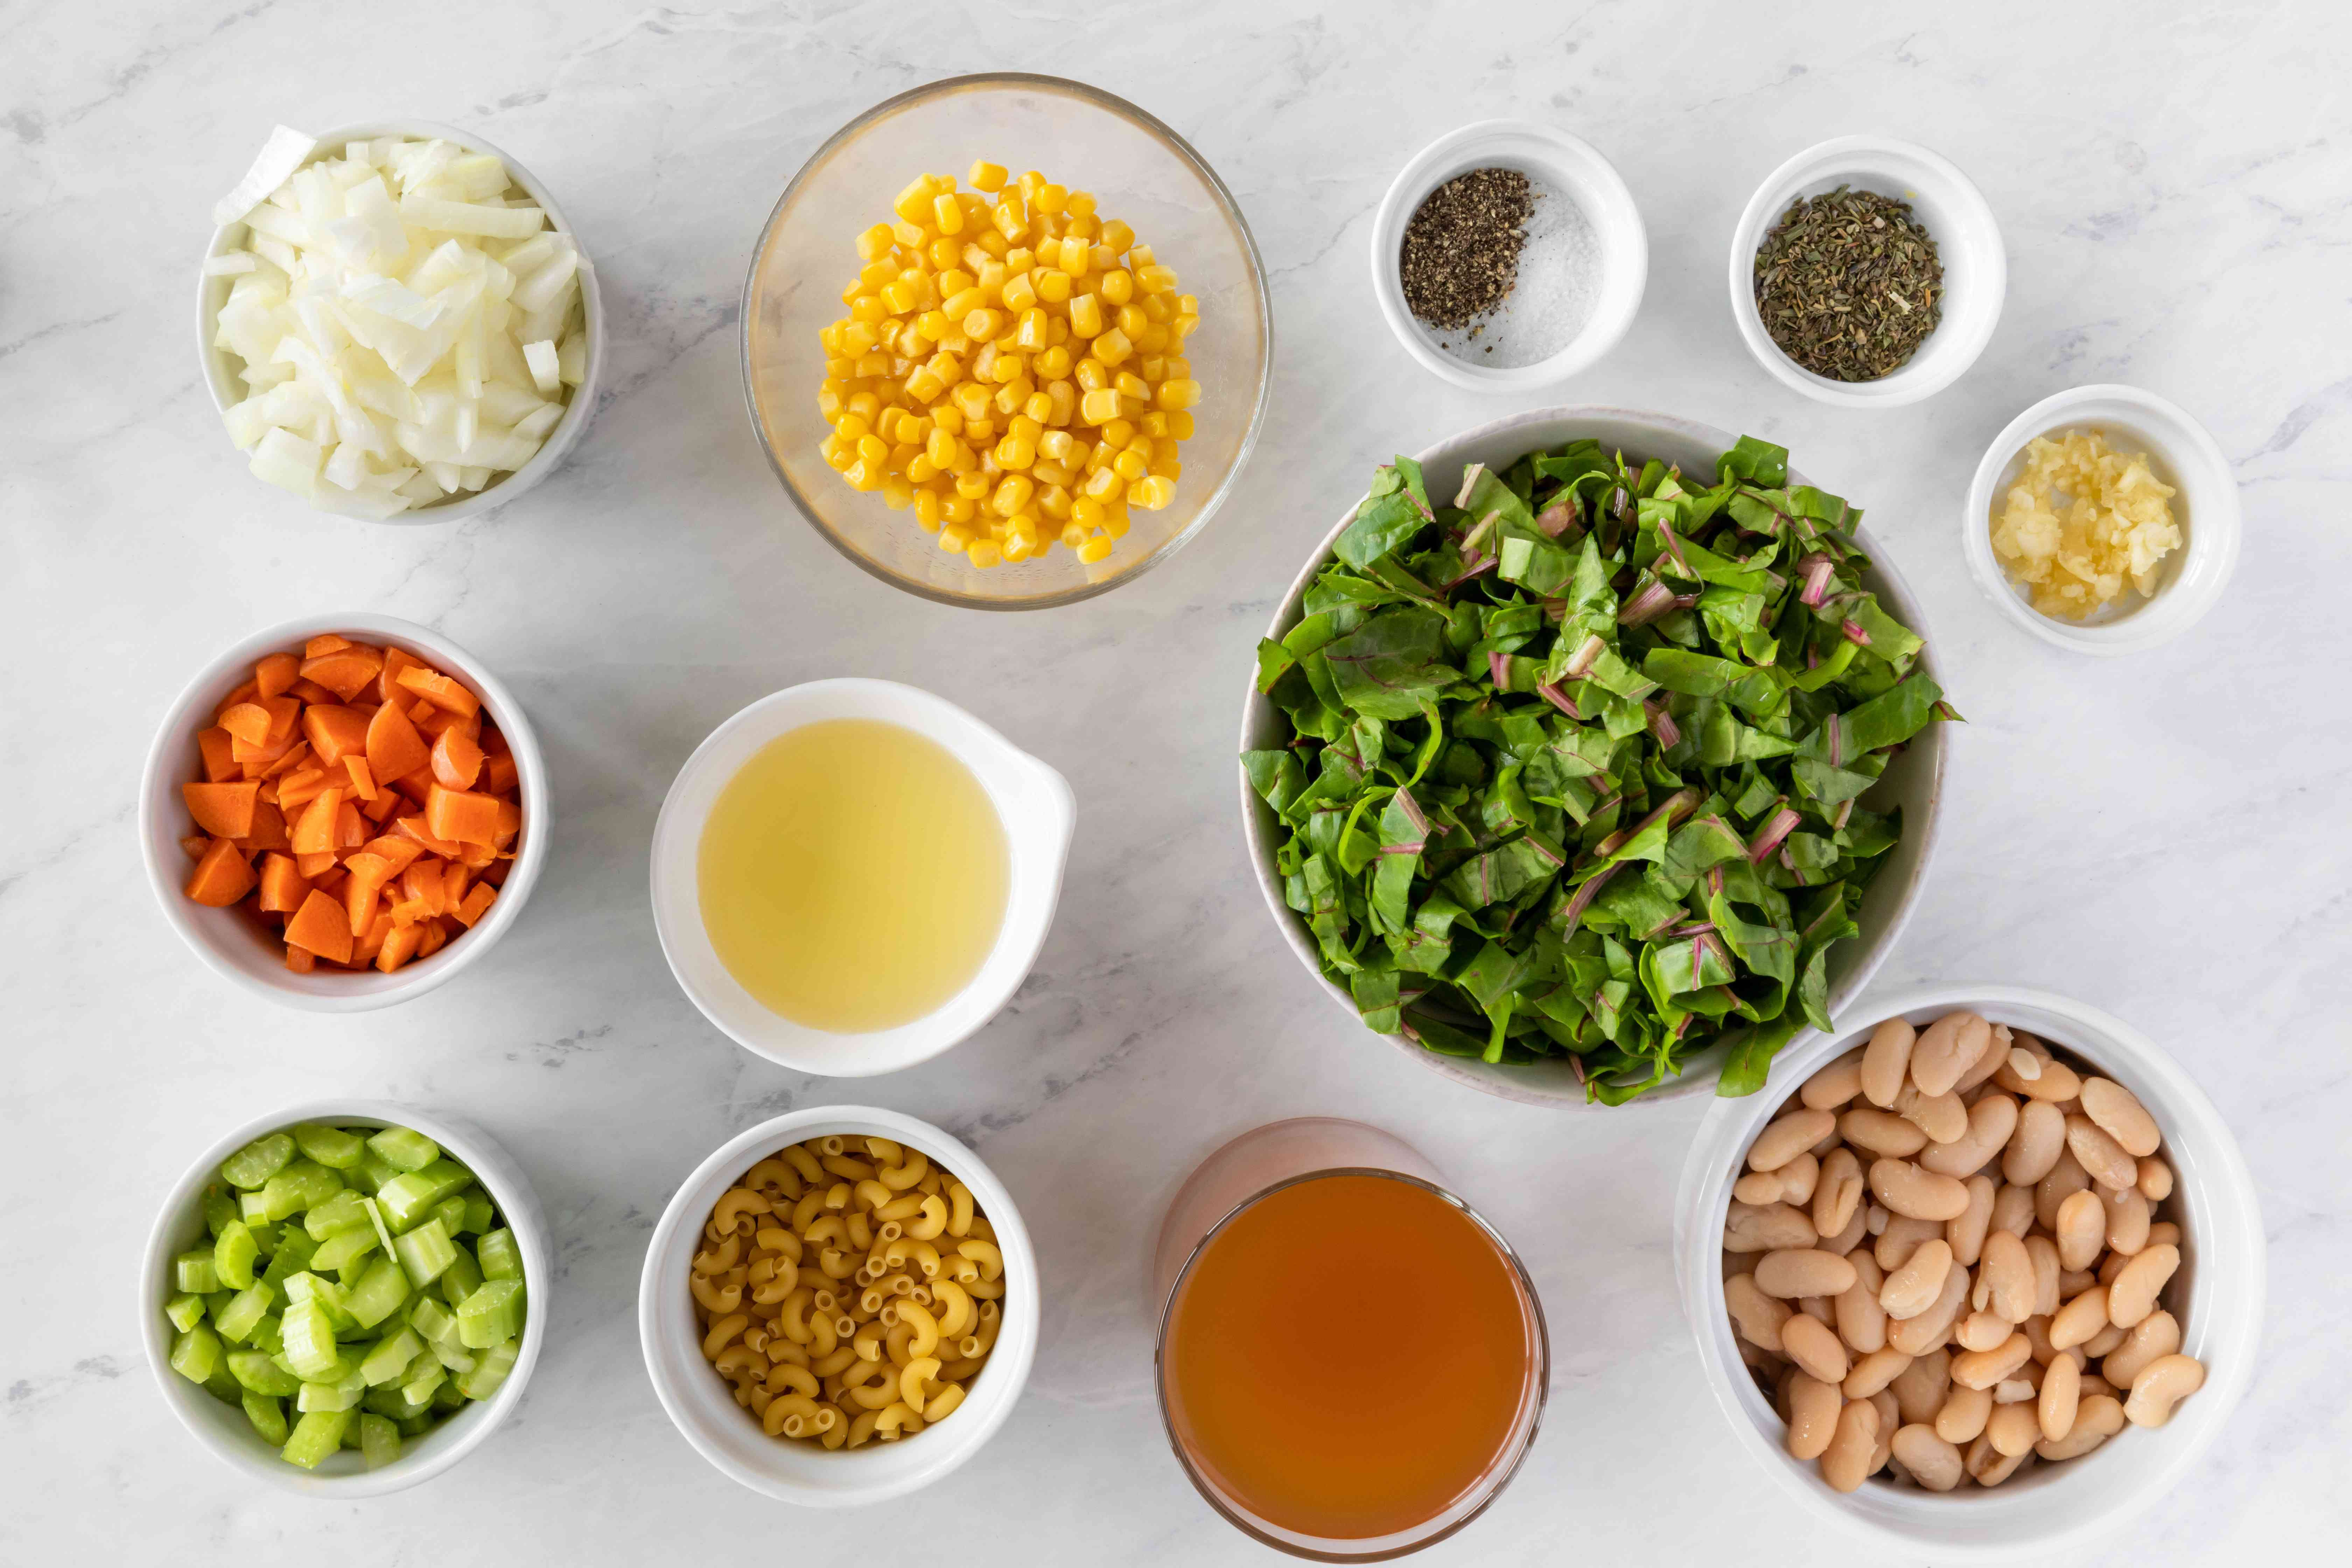 Ingredients for Cannellini White Bean Soup with Swiss Chard Recipe